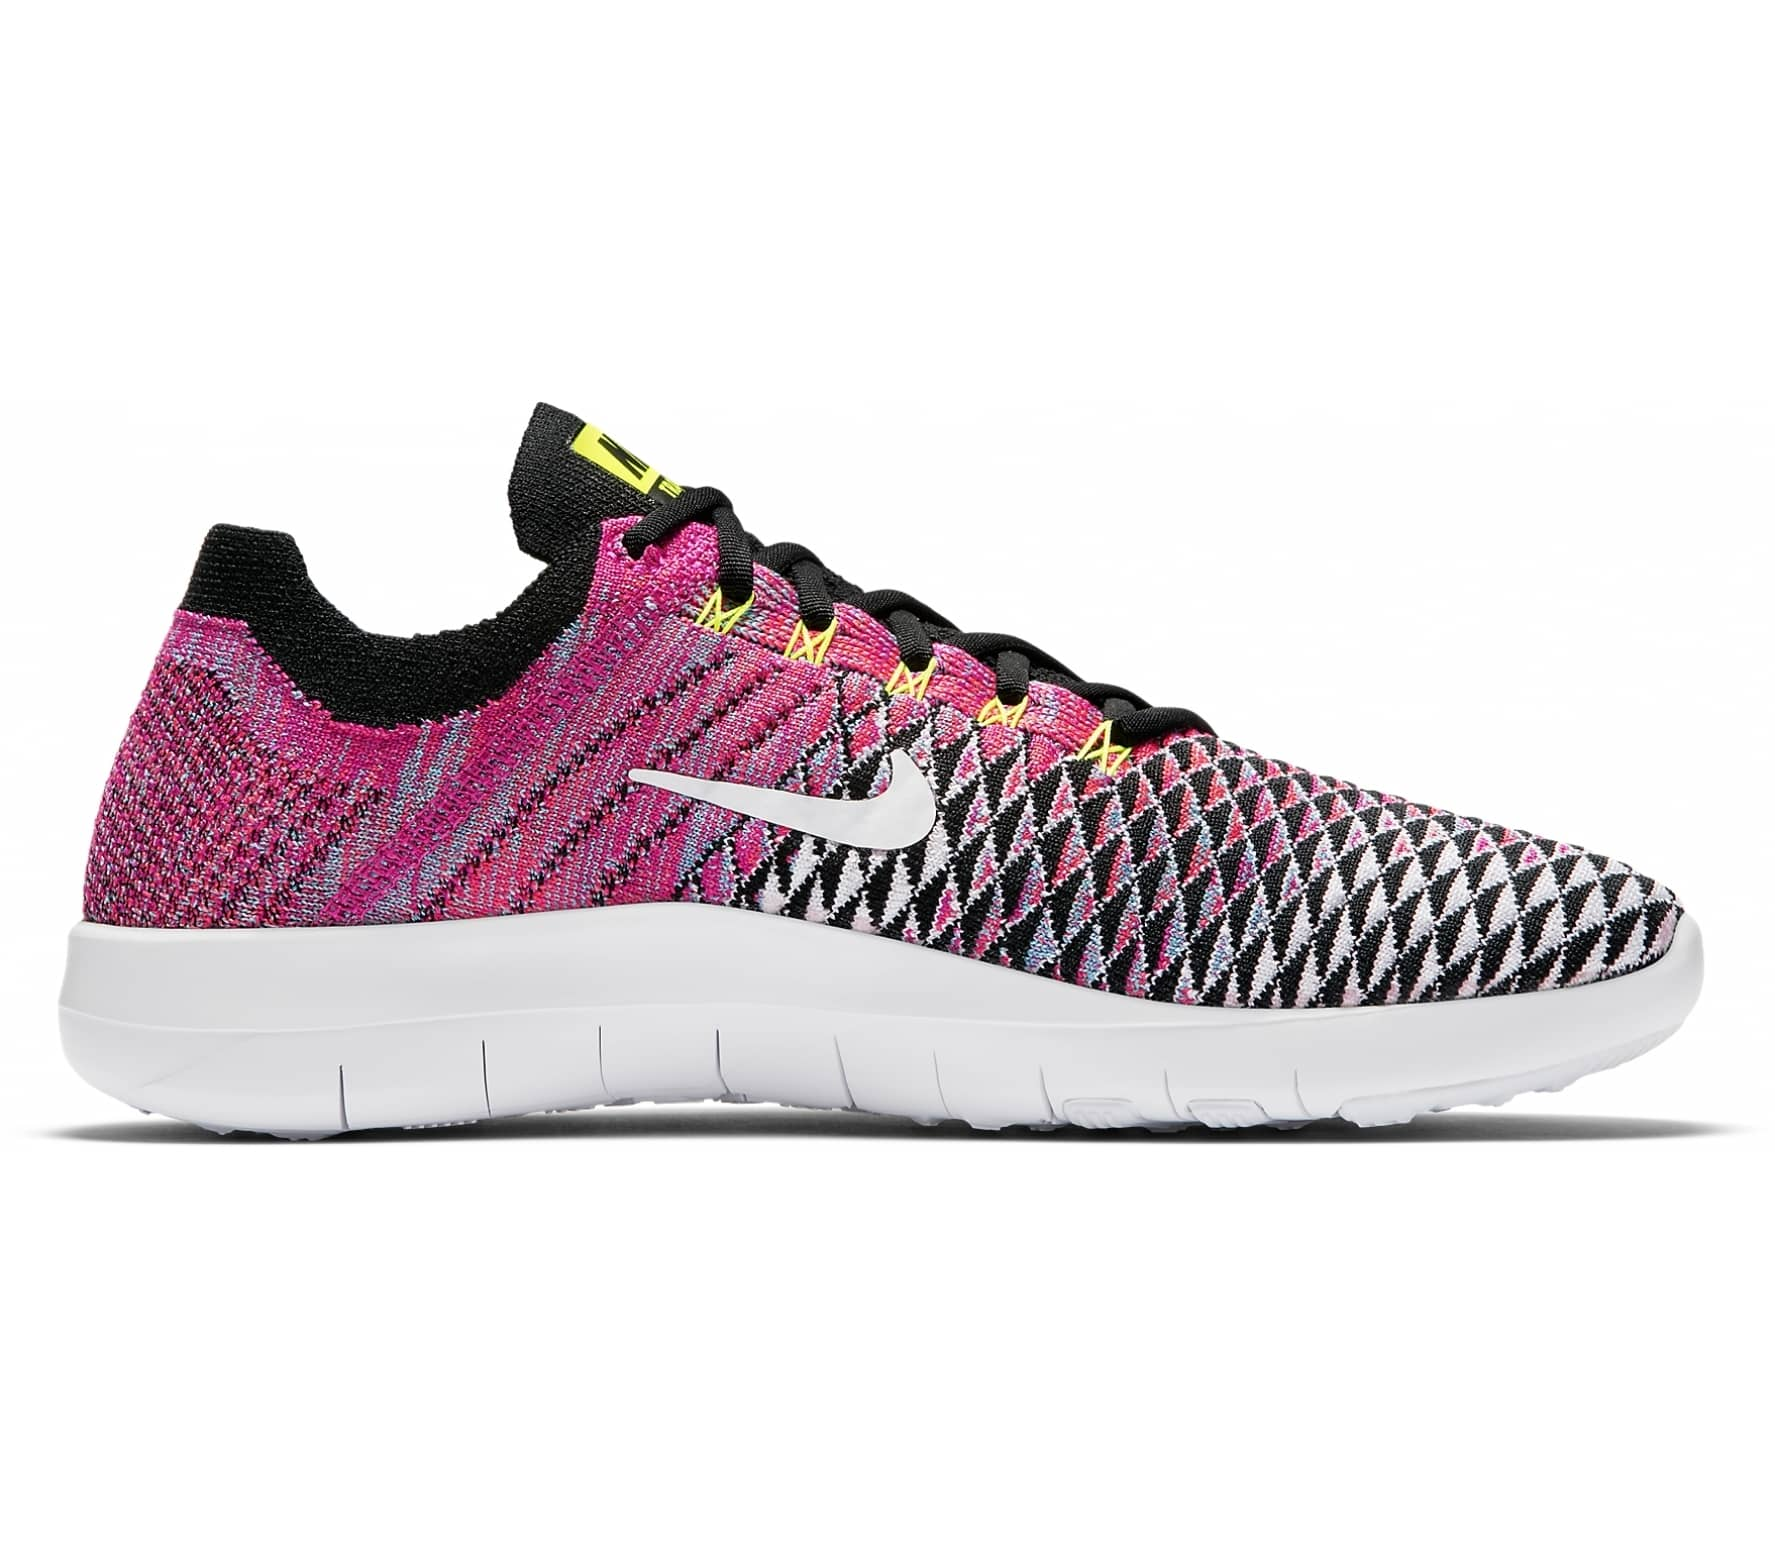 242efecb43372 Nike - Free TR Flyknit 2 women  s training shoes (pink black) - buy ...